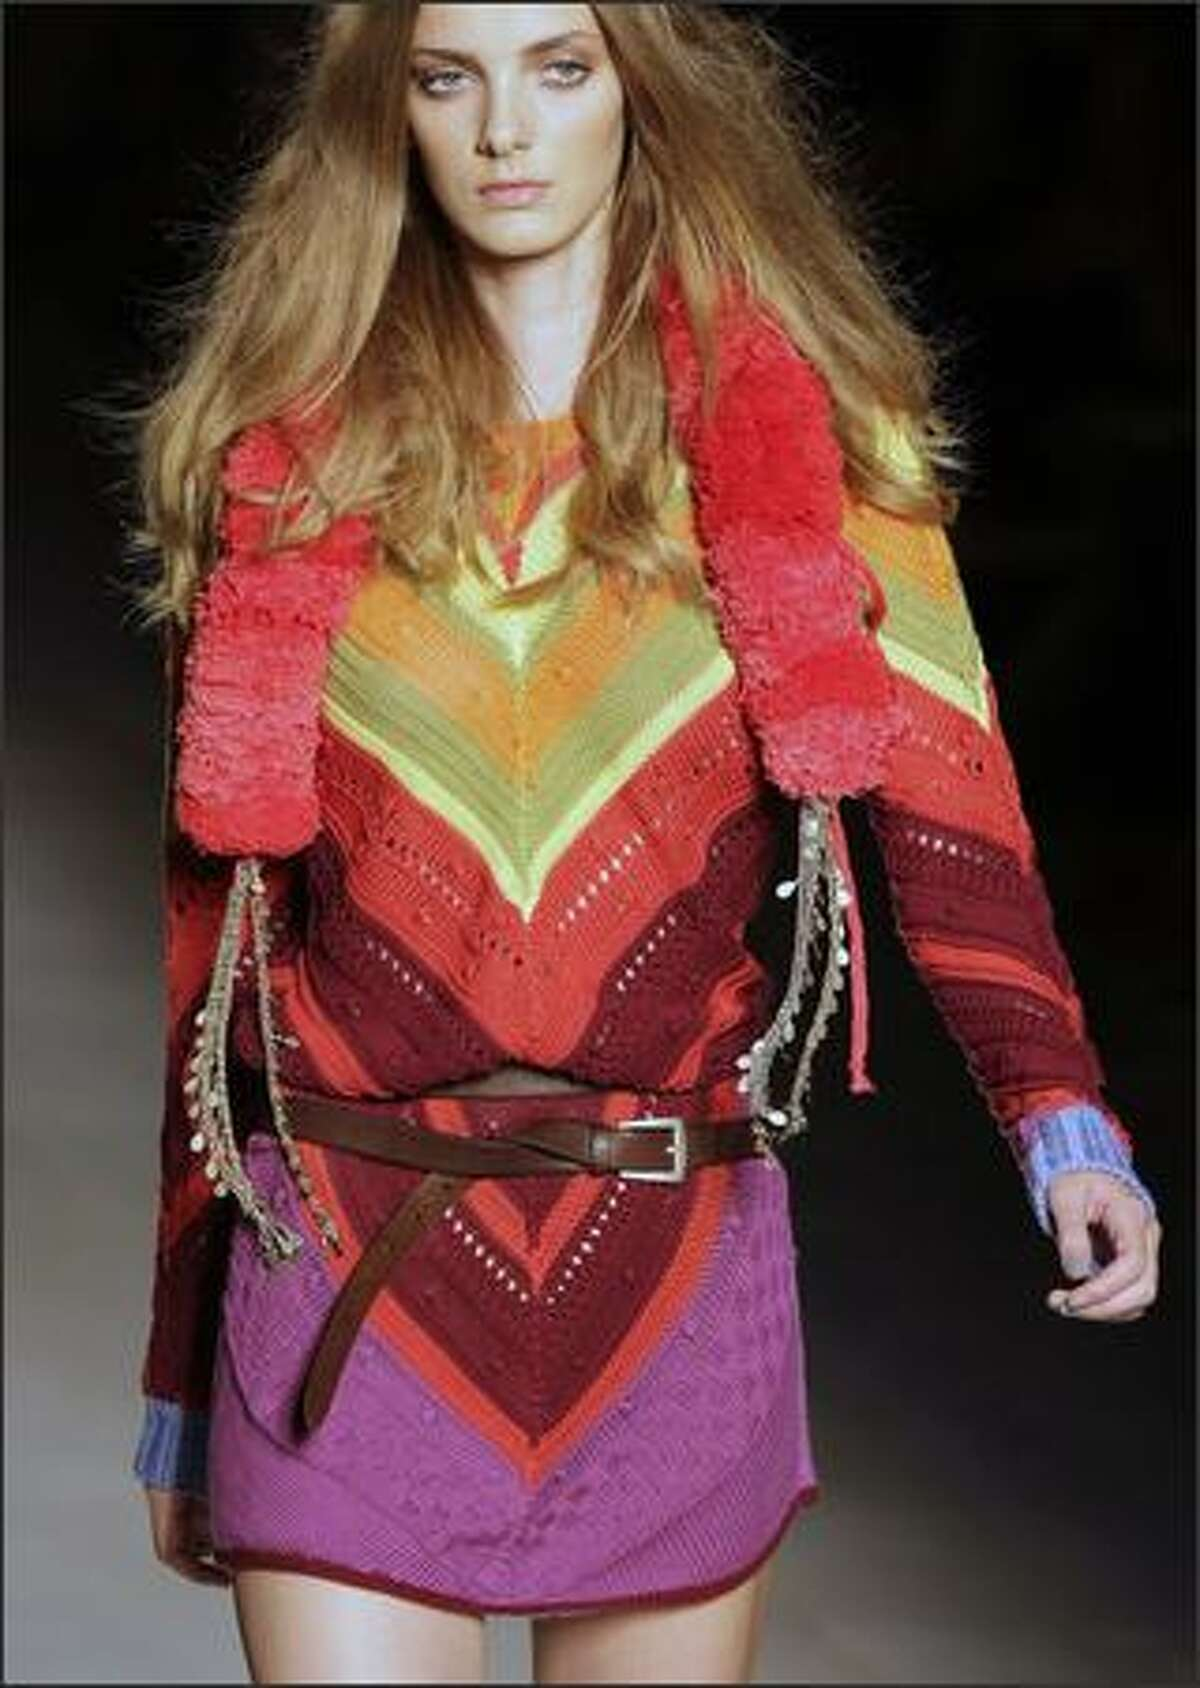 A model presents a creation by Italian designer Veronica Etro.